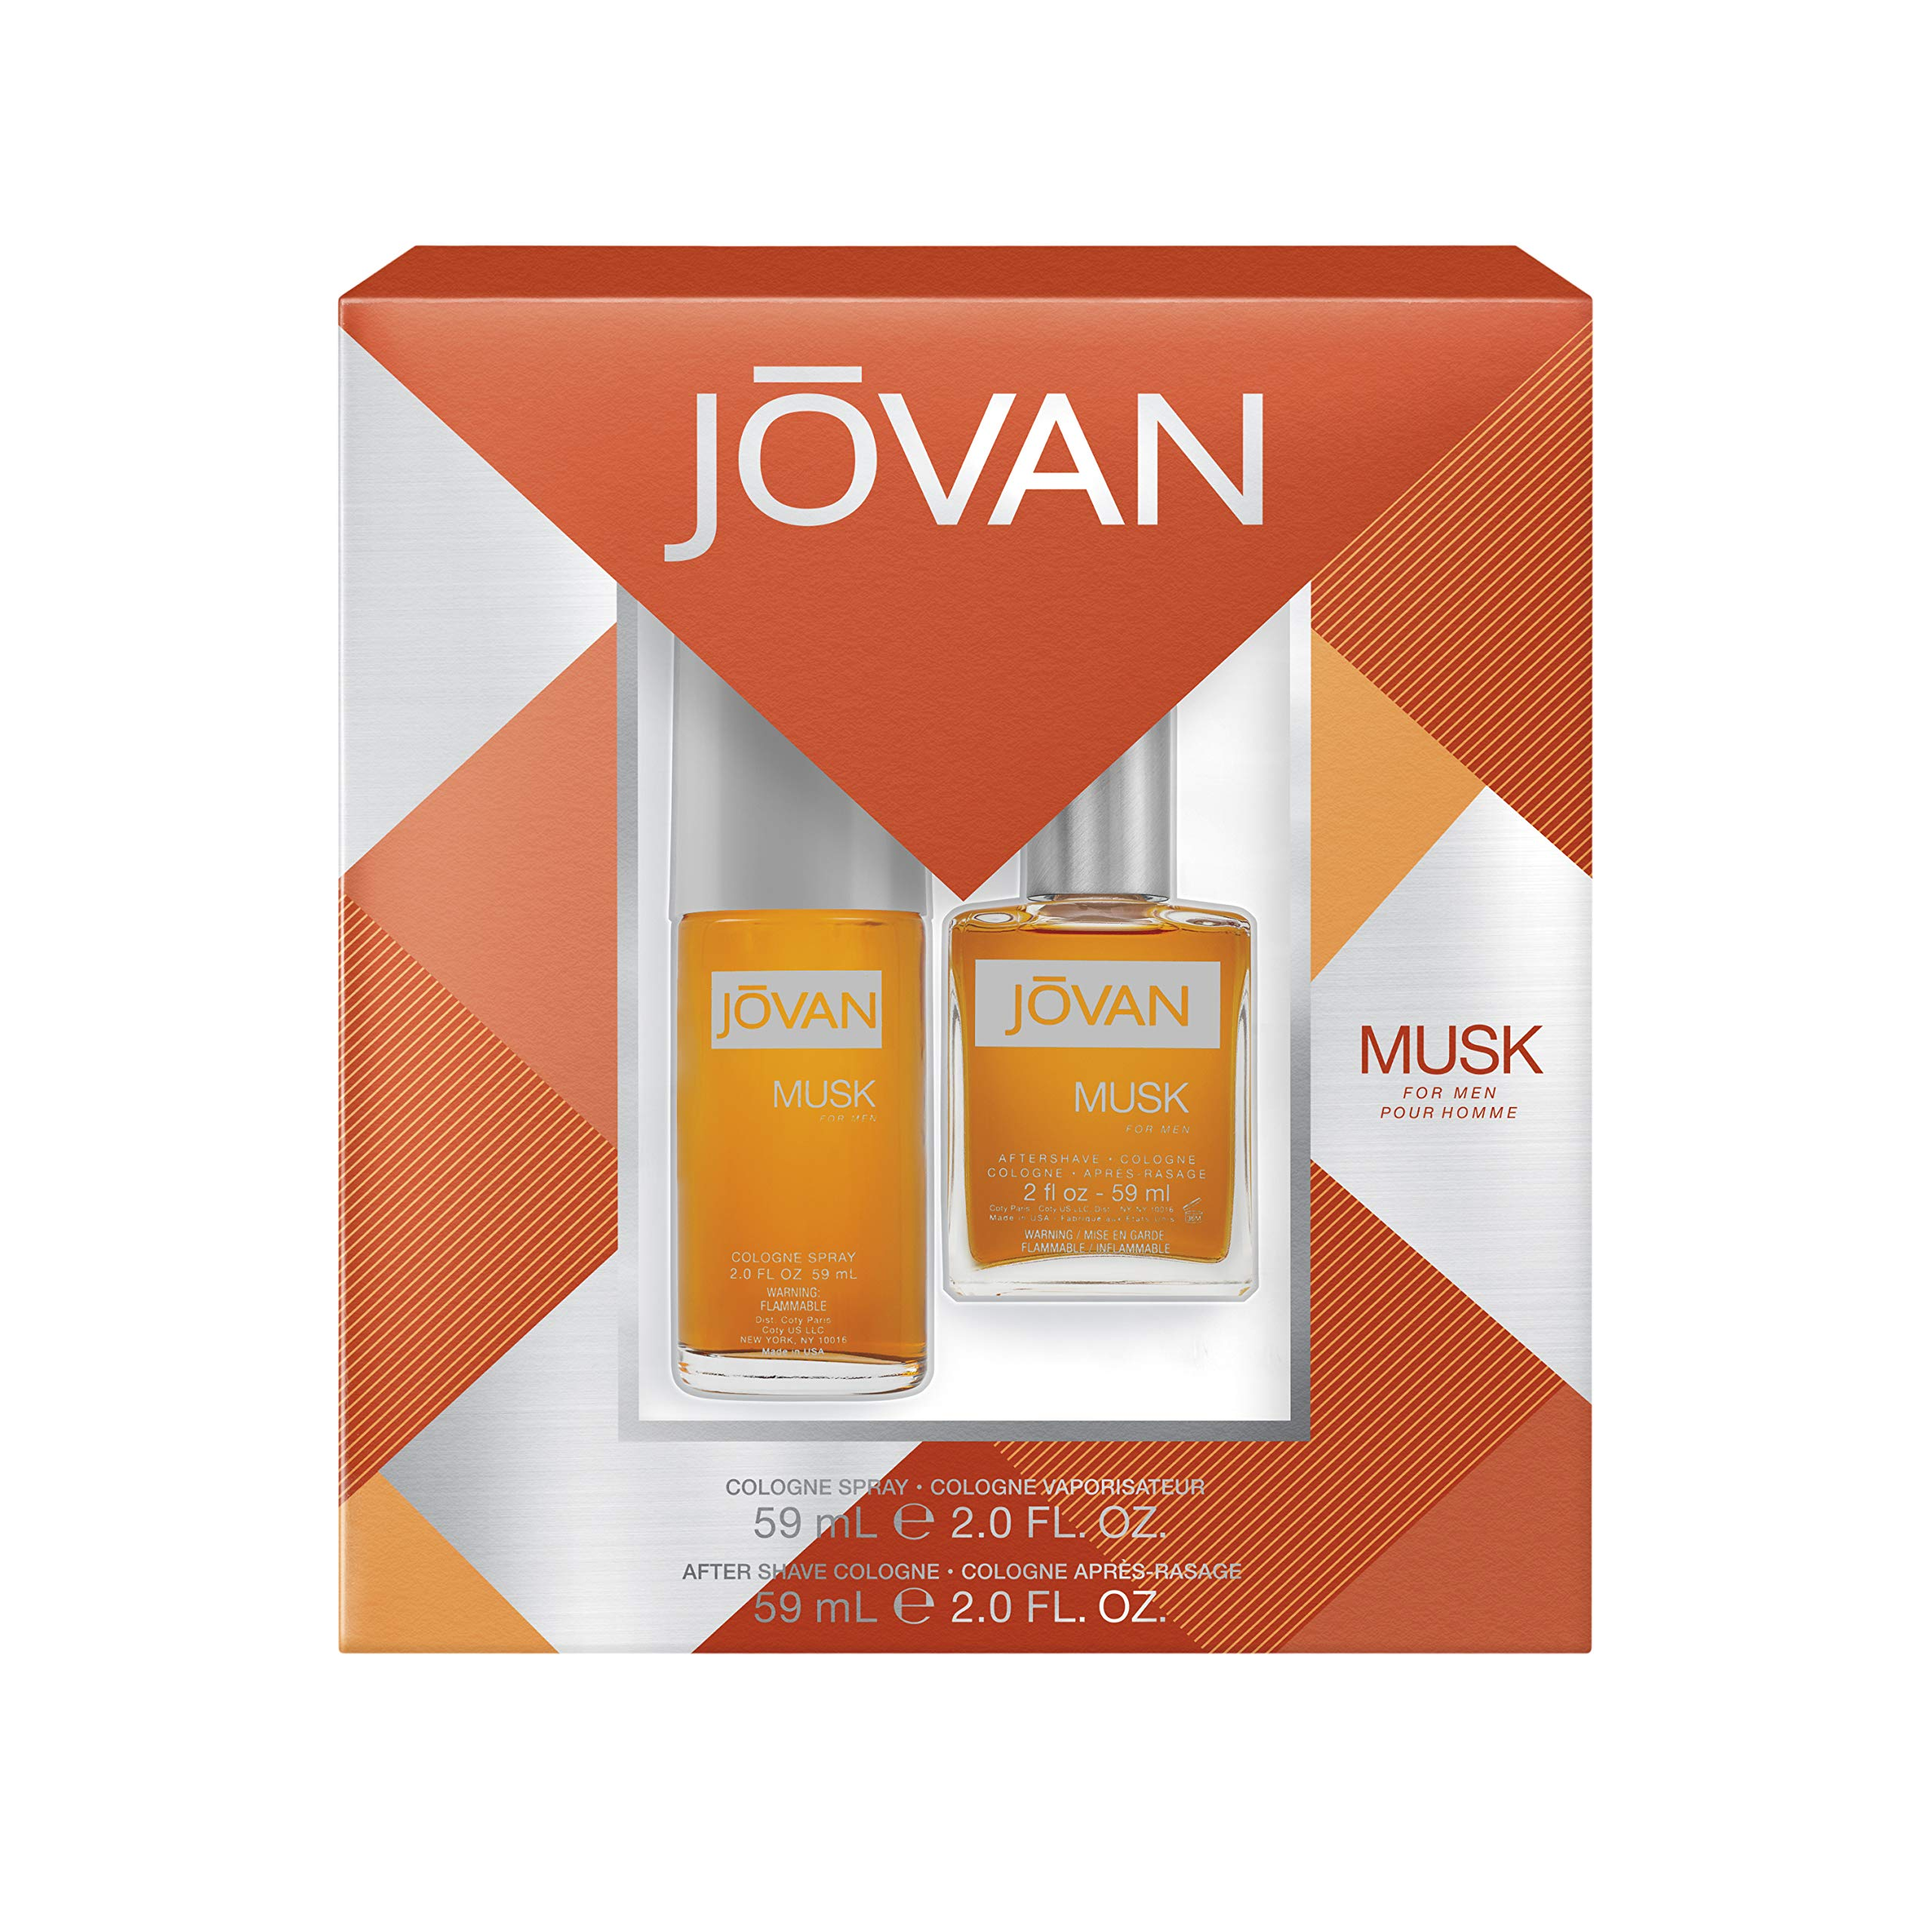 Jovan Jovan Musk For Men 2-Piece Gift Set With 2-Ounce Cologne Spray And 2-Ounce Aftershave Cologne, 0.98105710000000002 Pounds by Jovan